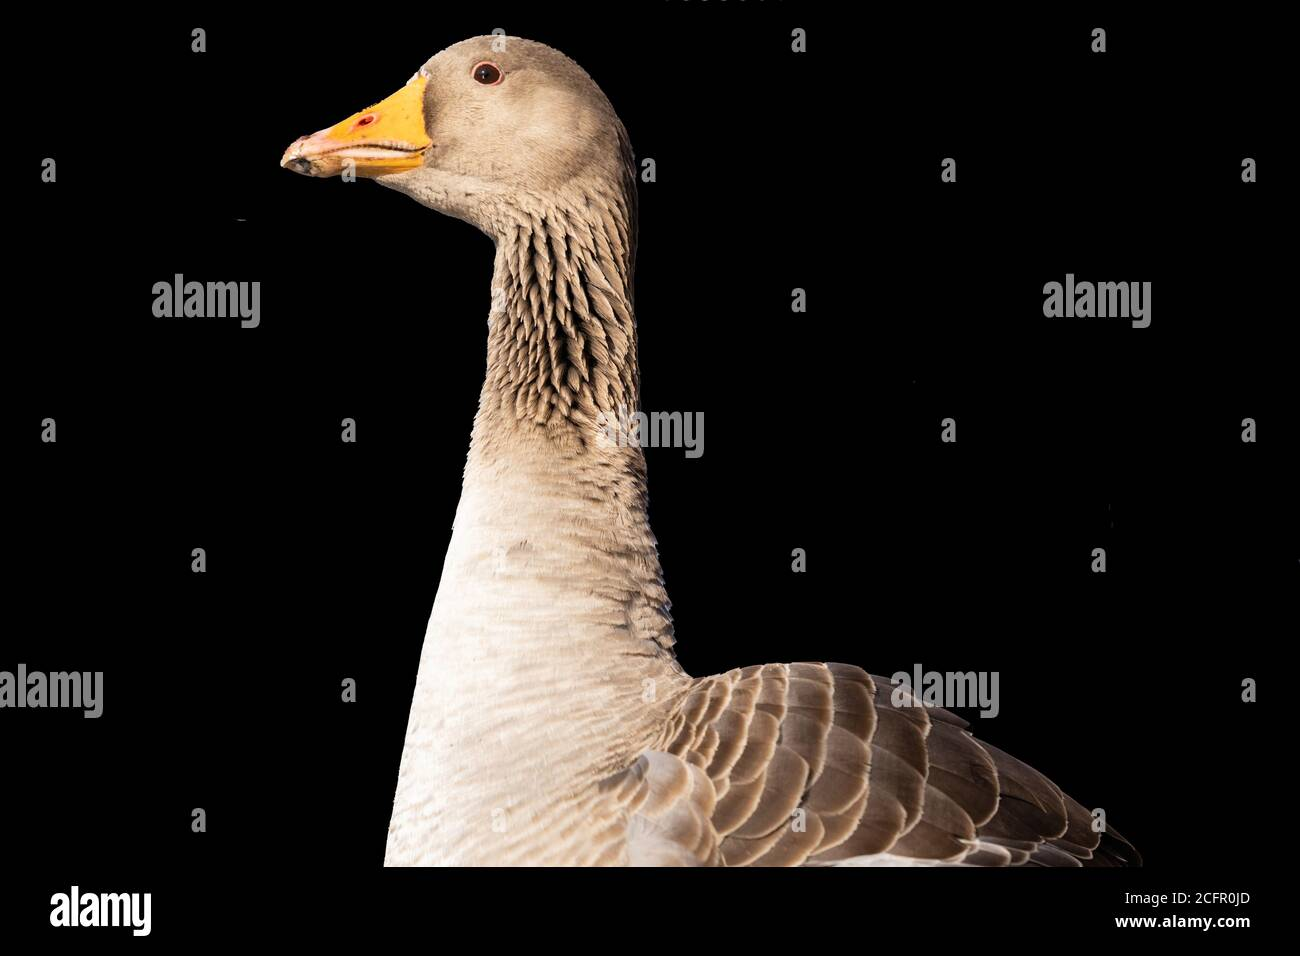 Greylag Goose with a long neck and light brown and black feathers, York, North Yorkshire, England, UK. Stock Photo